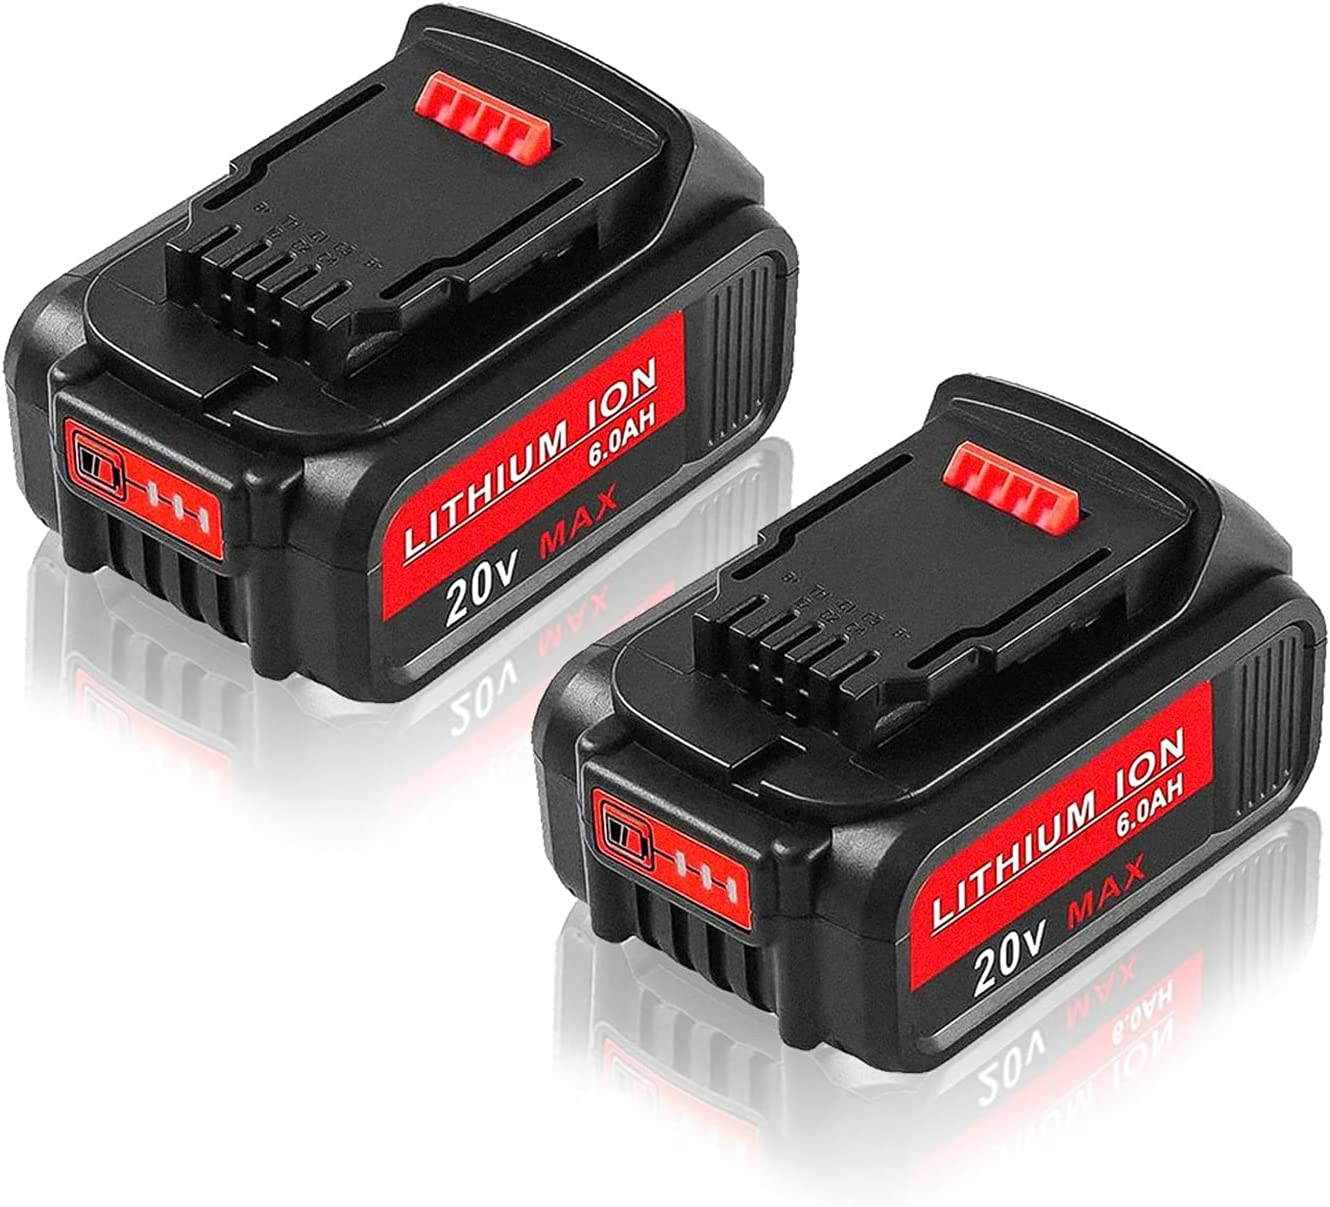 2PACK 6.0Ah Selling rankings DCB205 Max 78% OFF Battery Replacement MA for 20V Dewalt